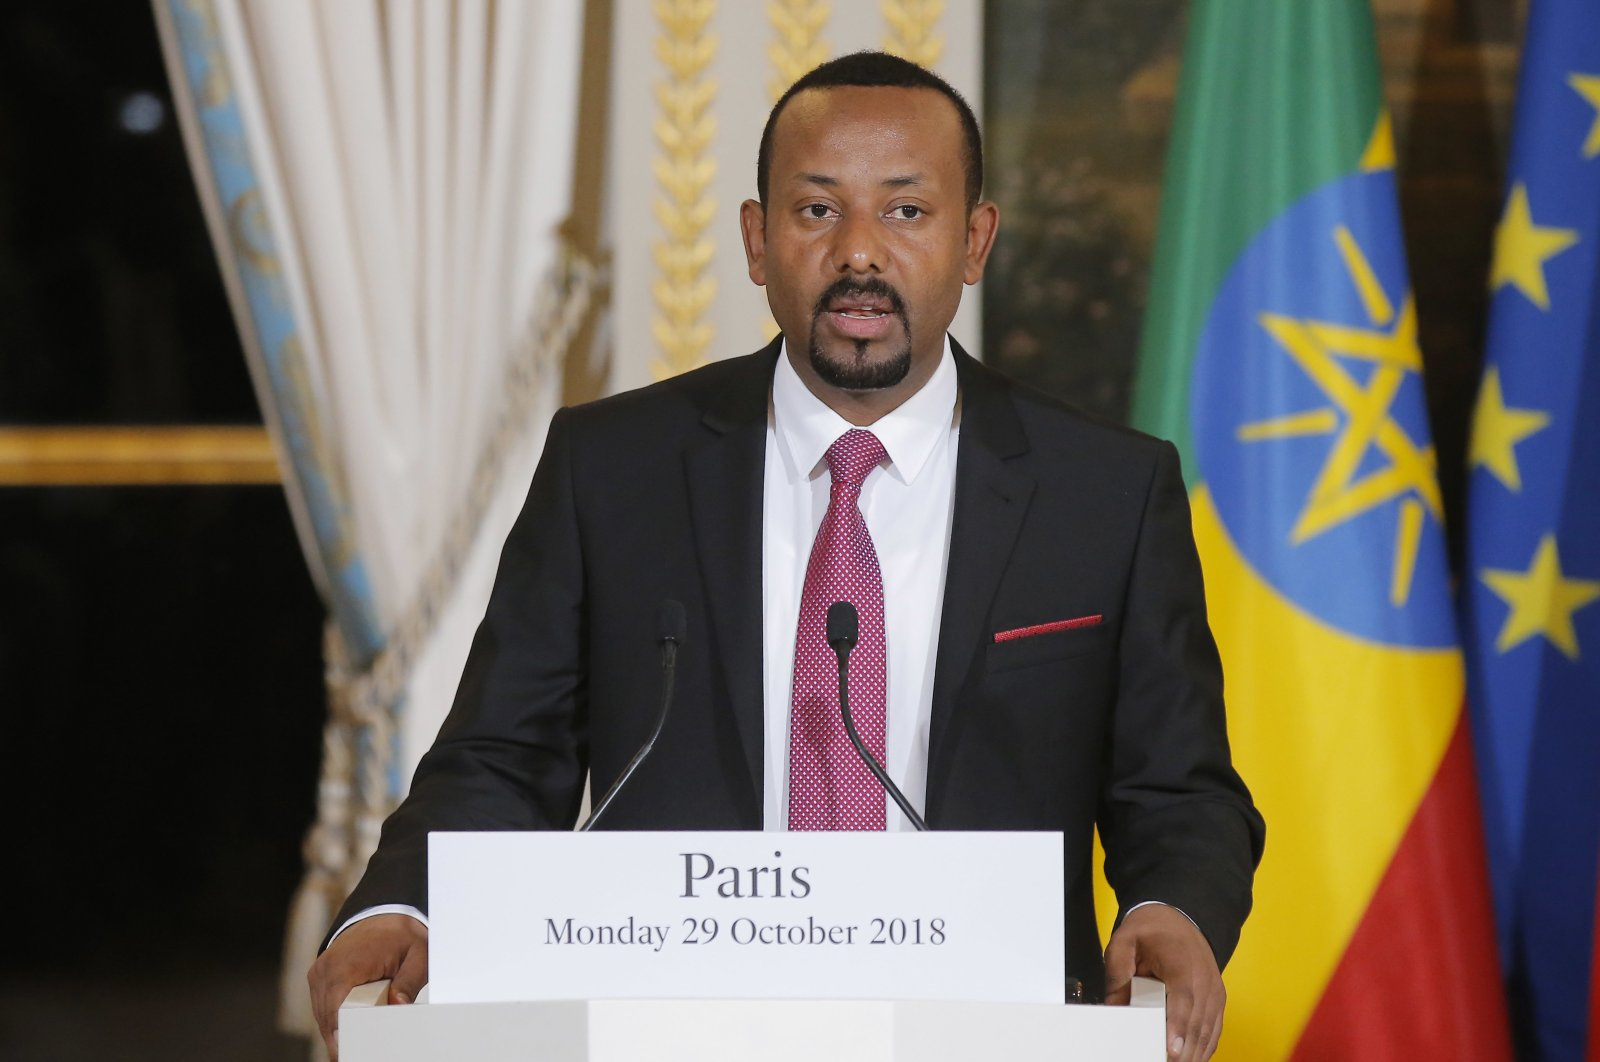 Ethiopian Prime Minister Abiy Ahmed speaks during a news conference at the Elysee Palace in Paris, France, Monday, Oct. 29, 2018. (AP File Photo)